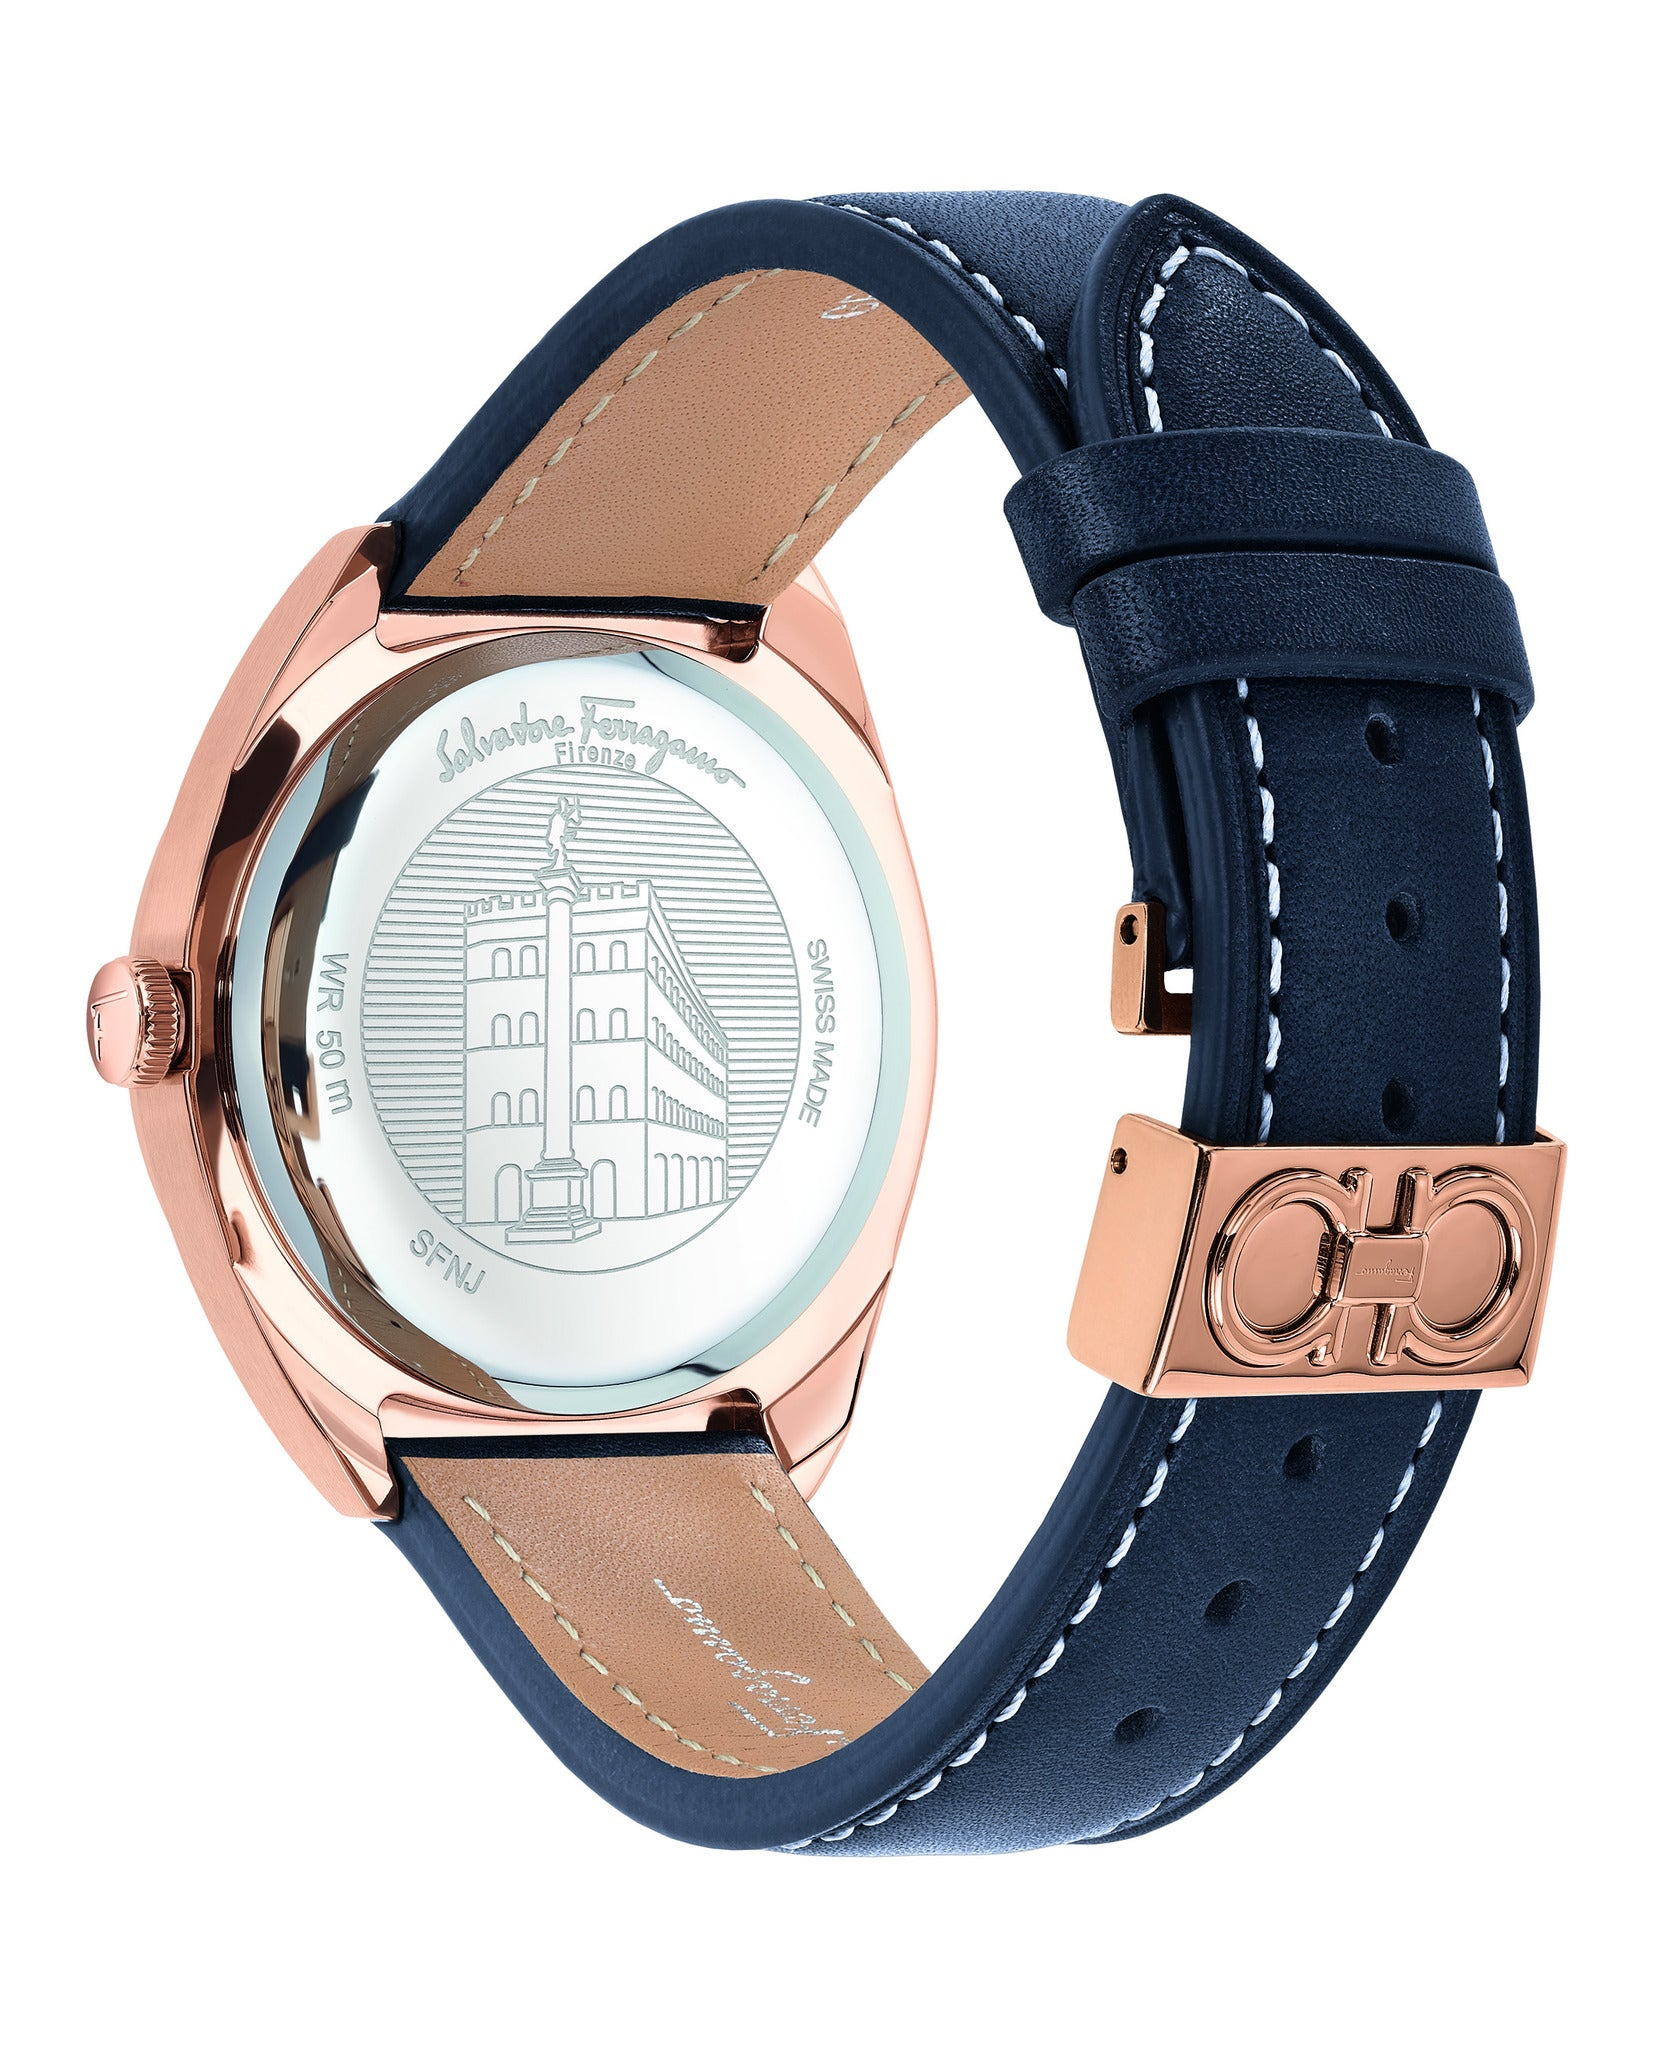 Ferragamo Evolution Leather Watch